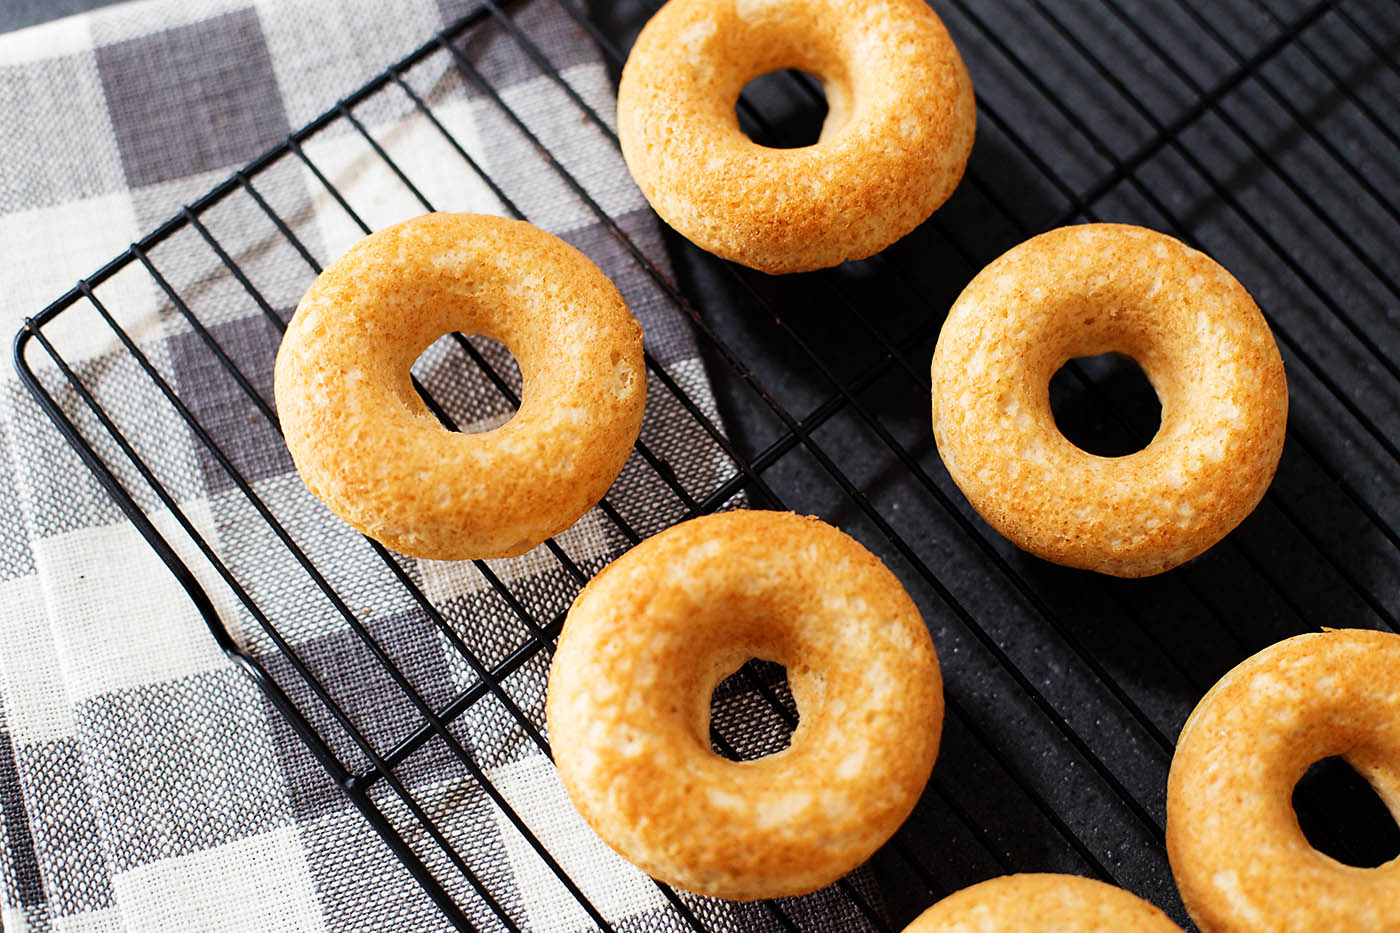 Baked donuts from a cake mix